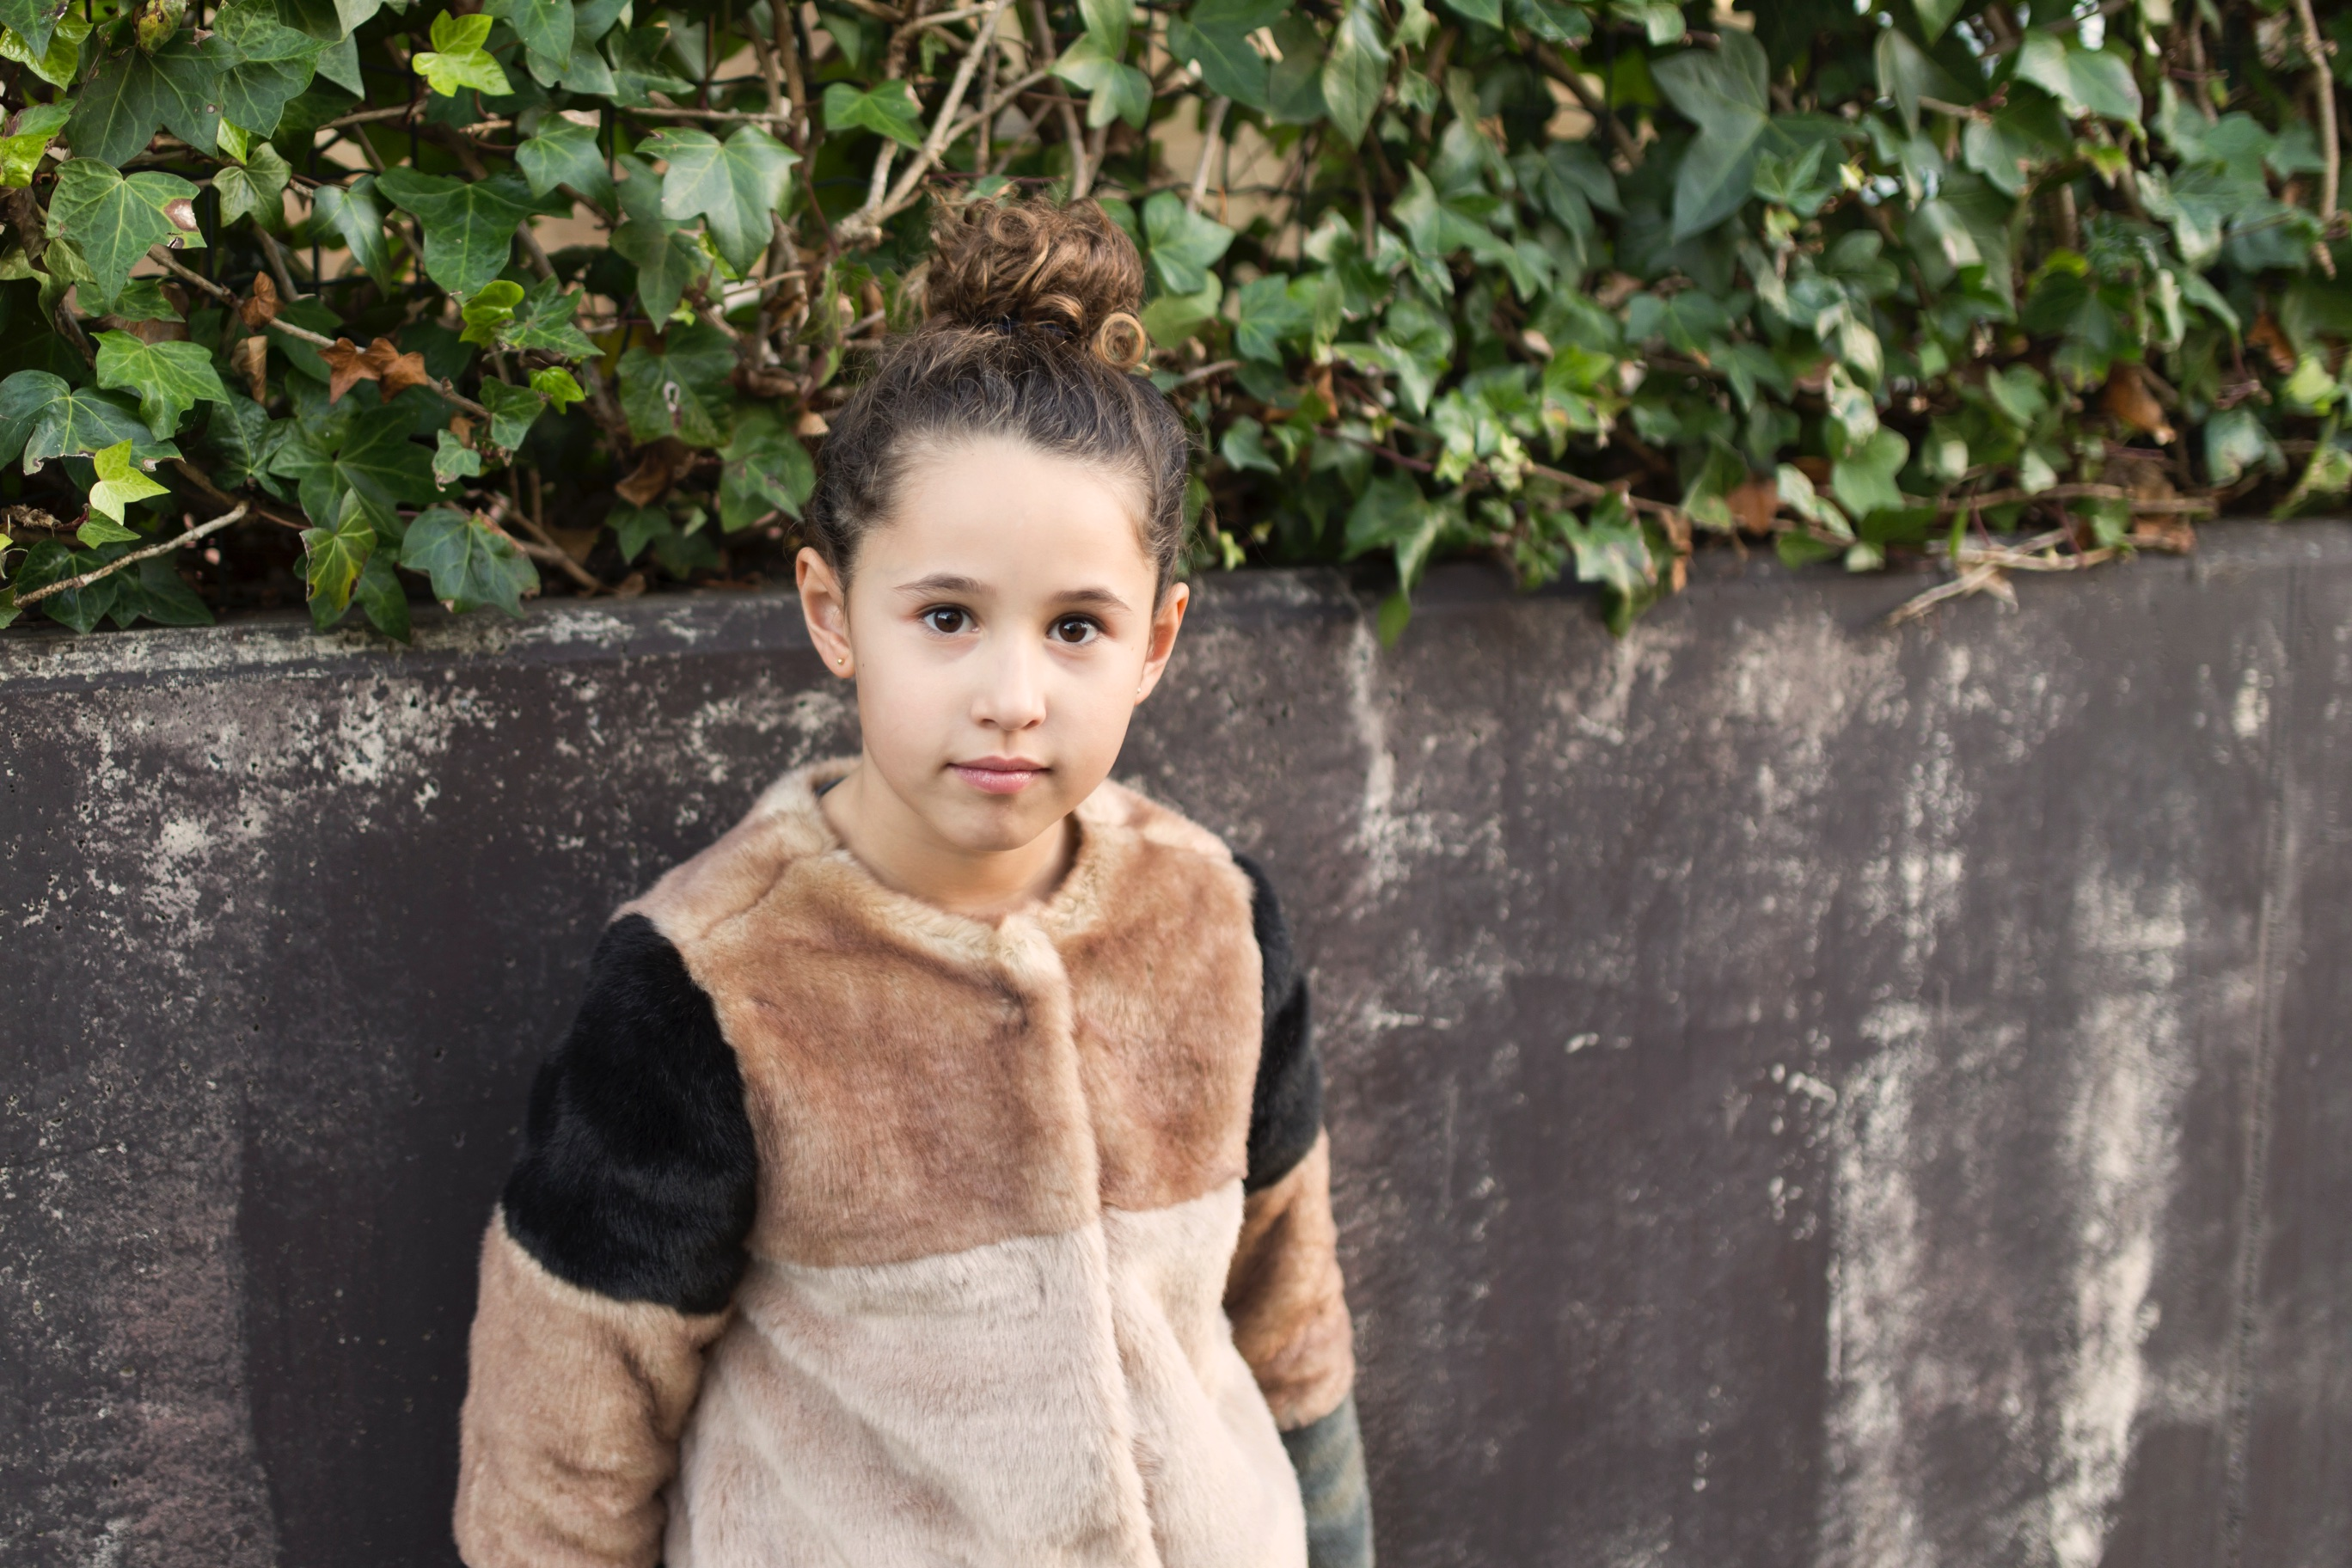 Jimena -style-zara coat-niños-moda-look-fashion girl-zara kids-descalzaporelparque